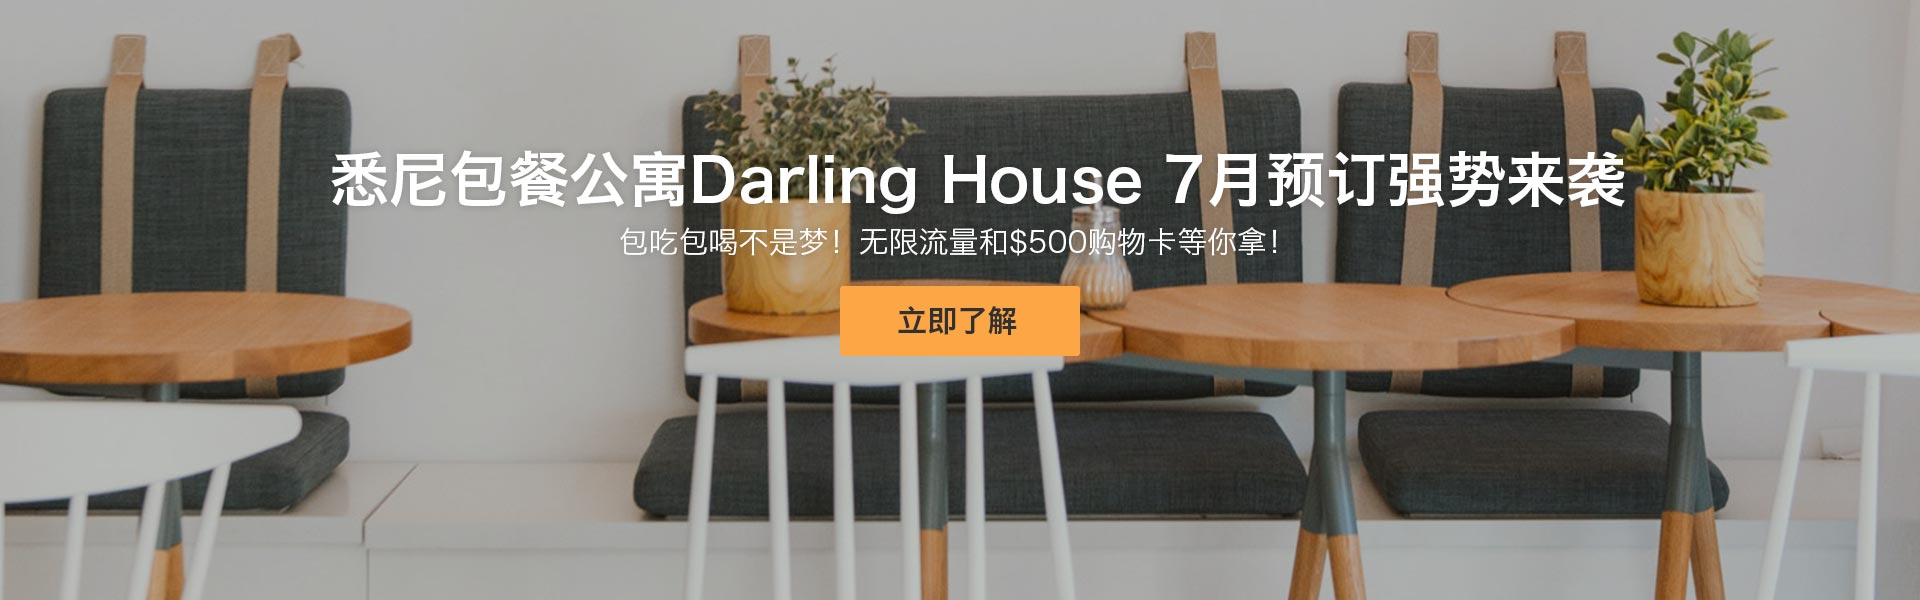 悉尼包餐公寓Darling House强势来袭!